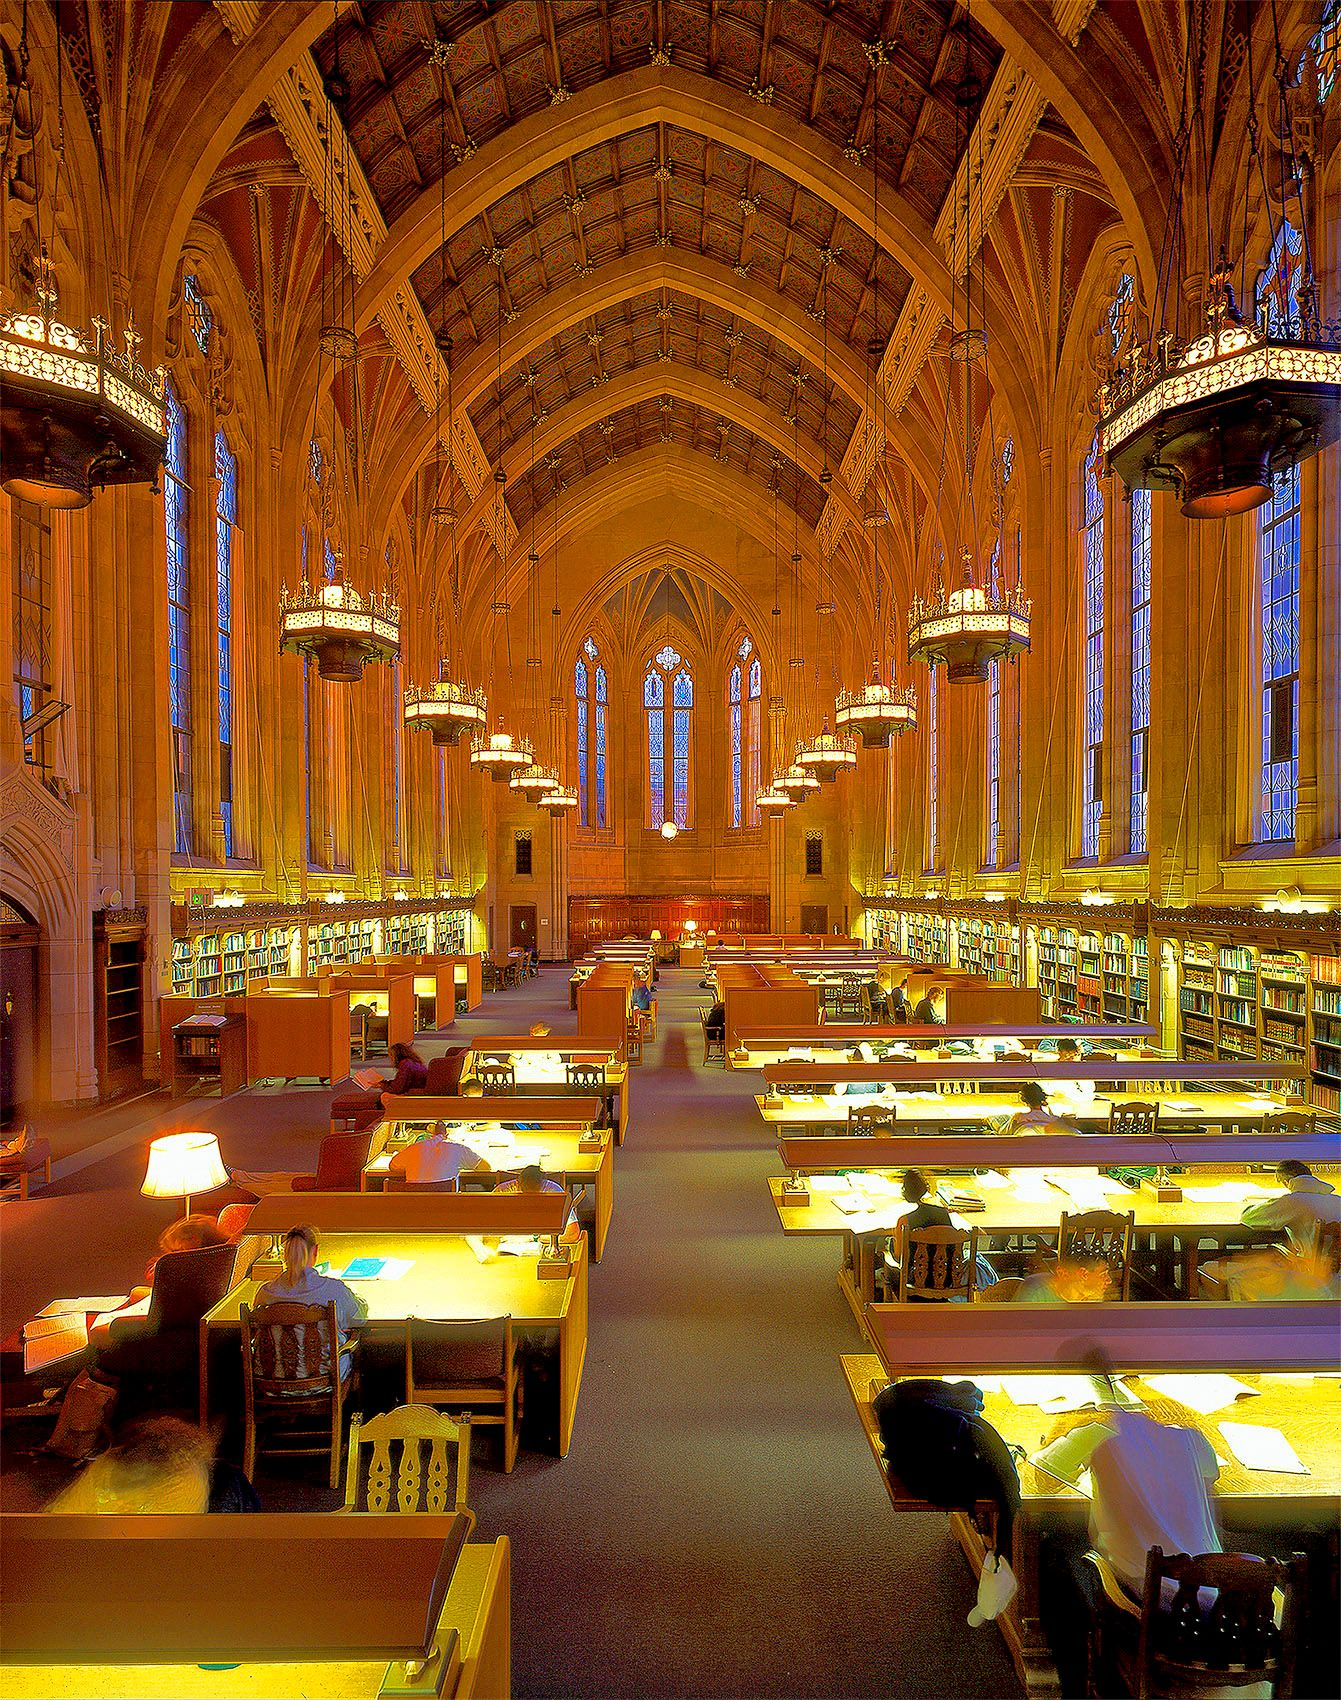 The senior reading room at the Suzallo Library on the UW campus is by far the most amazing room I've ever been in.